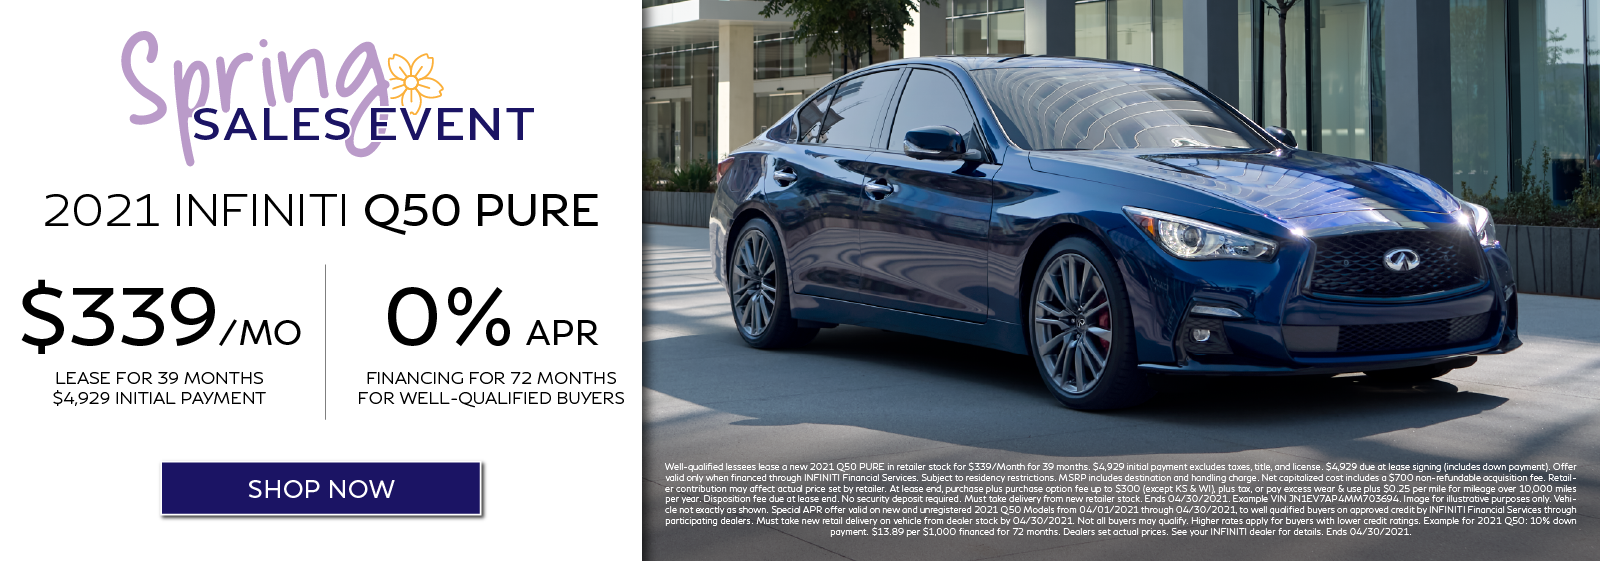 2021 Q50 Lease and APR Offers. Click to shop now.